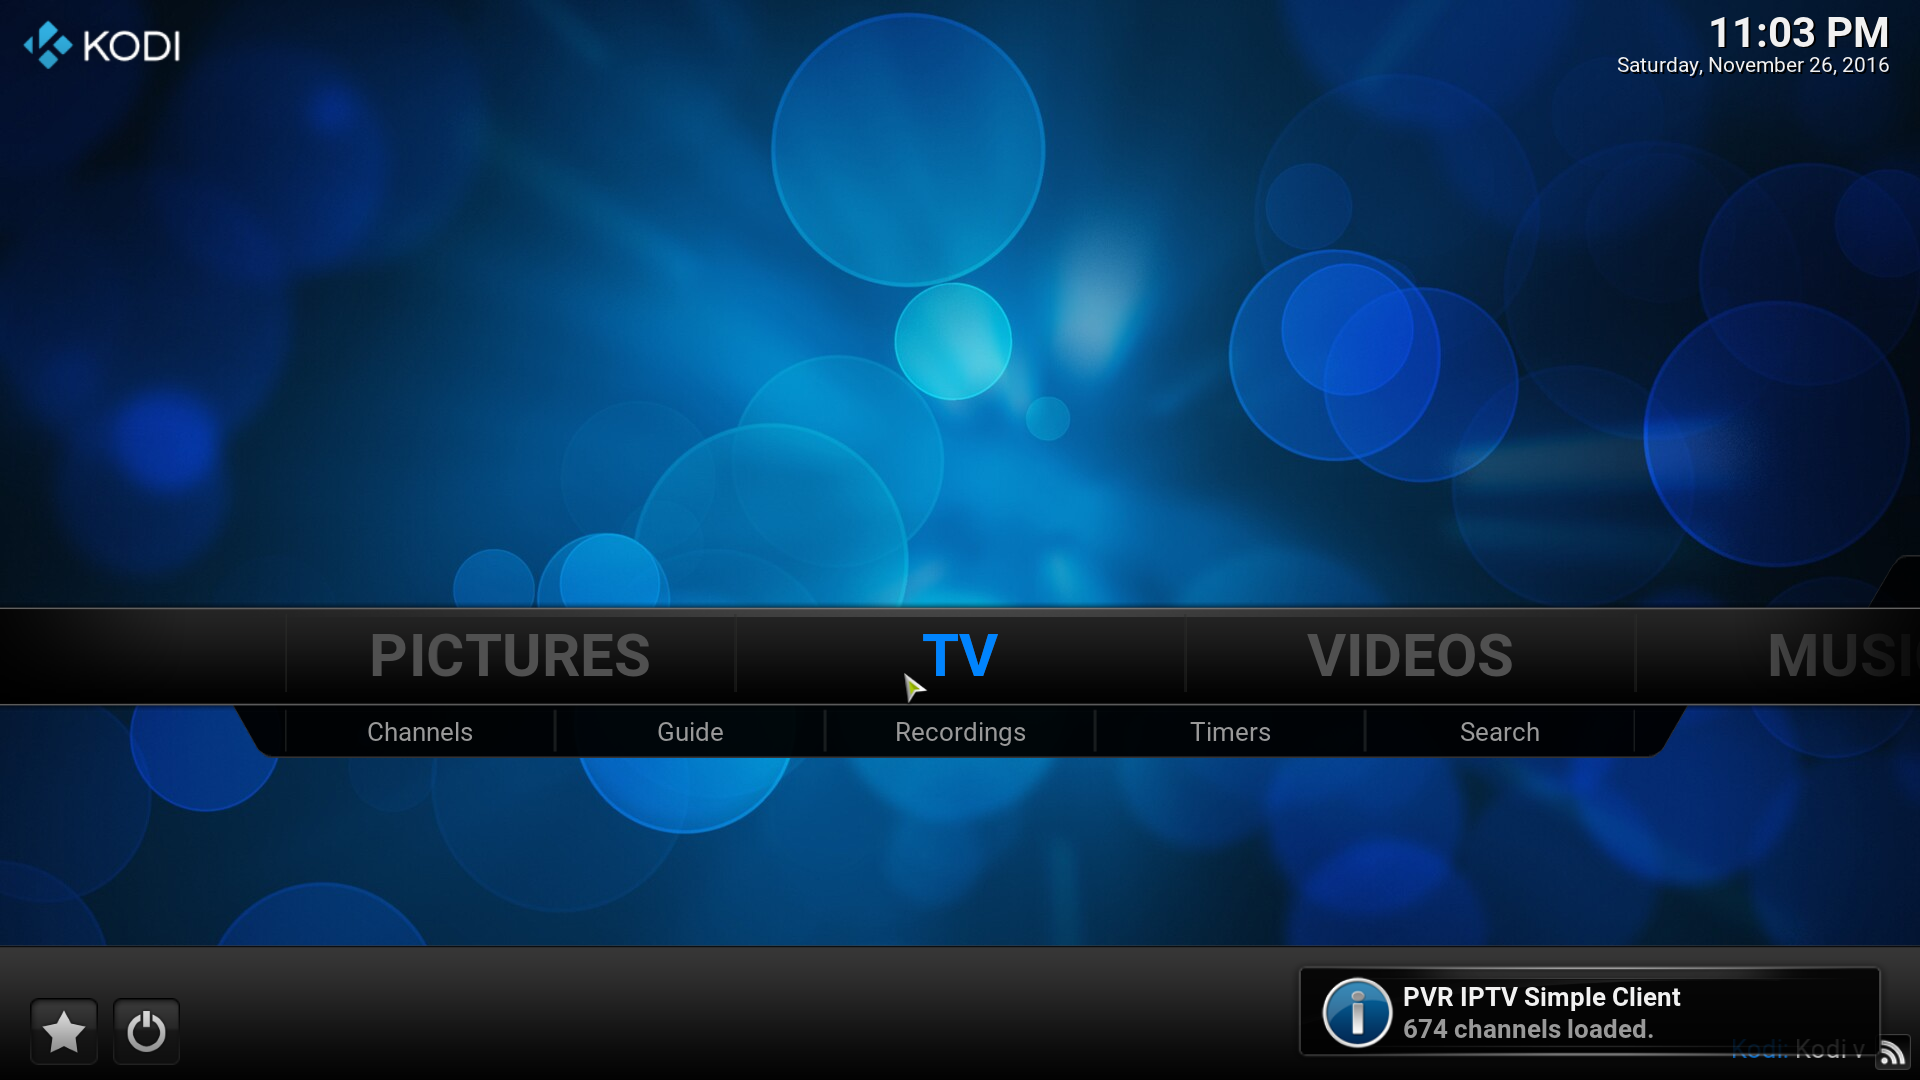 kodi settings live tv playlist screenshot